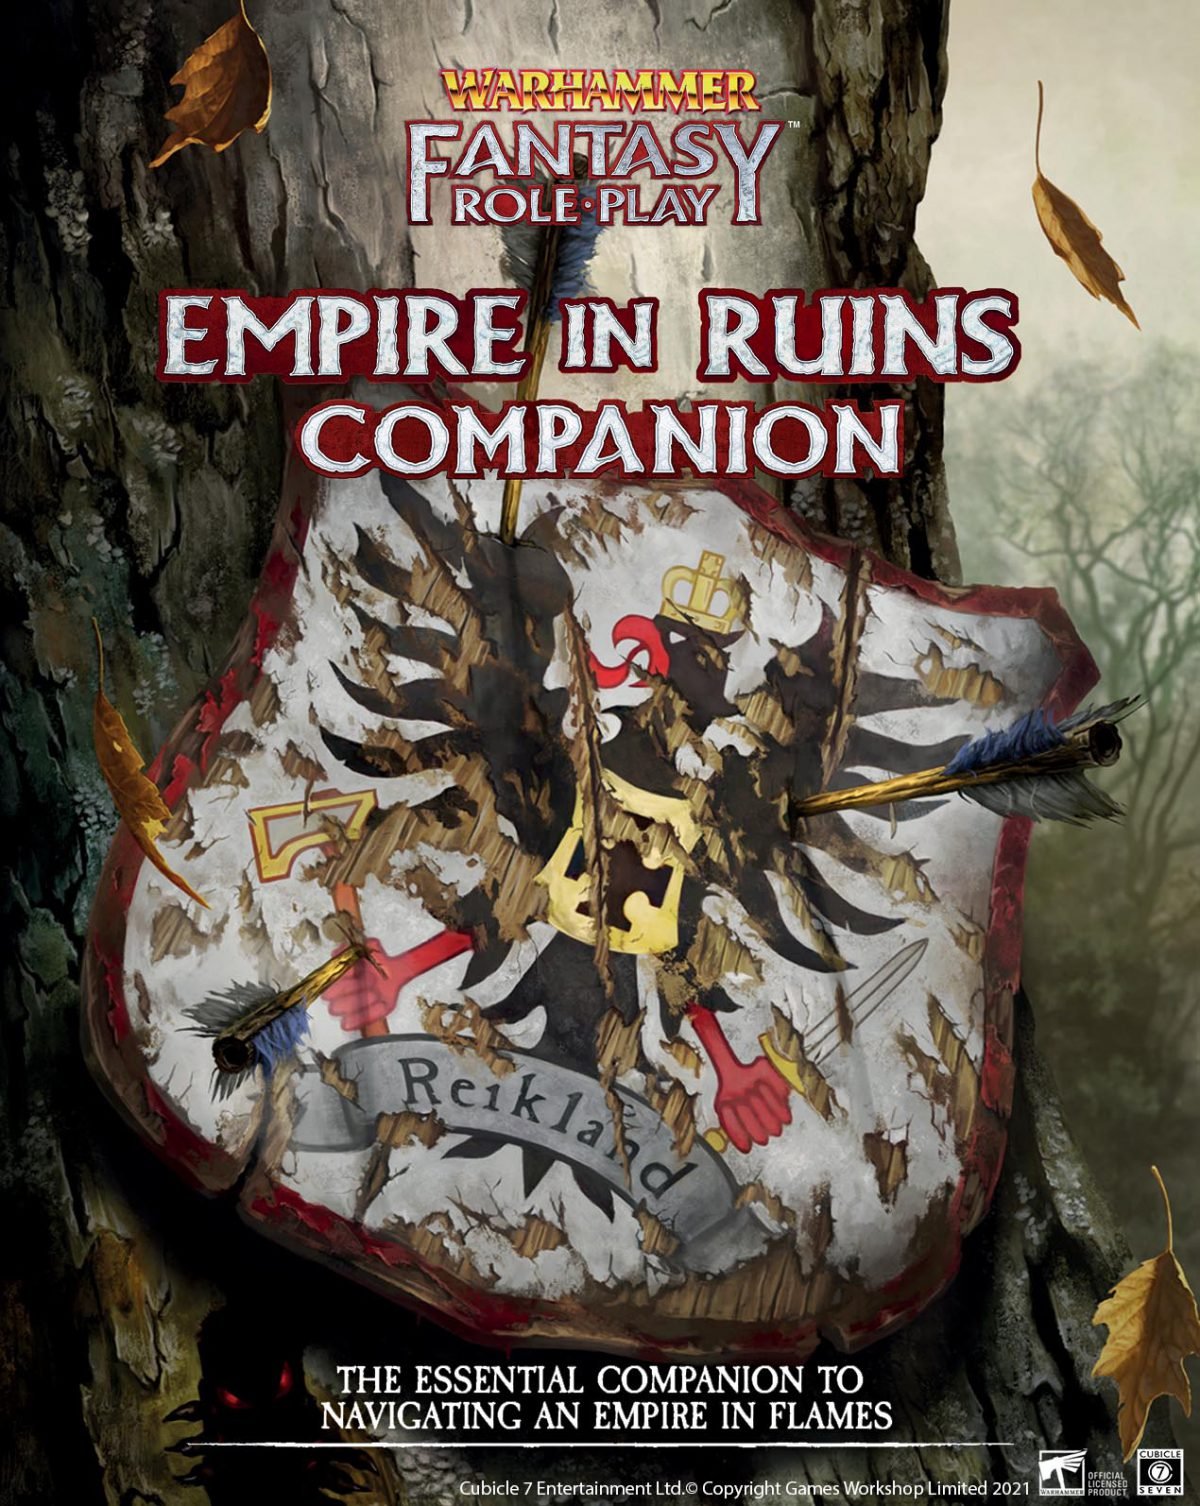 Empire In Ruins Companion - Warhammer Fantasy Role-Play NEW